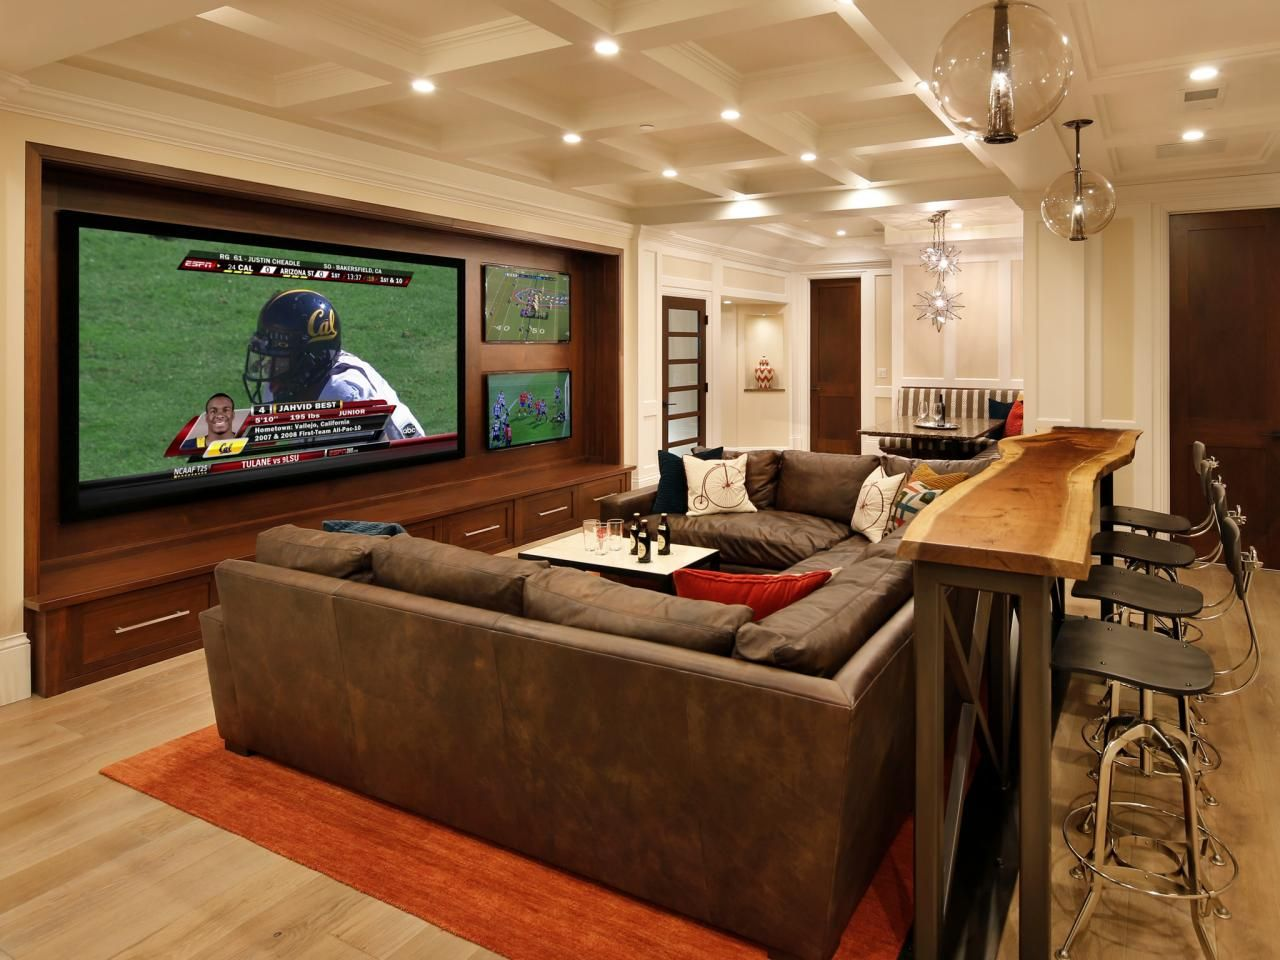 Basement Sports Bar Ideas. Basement Sports Bar Ideas N - Brint.co